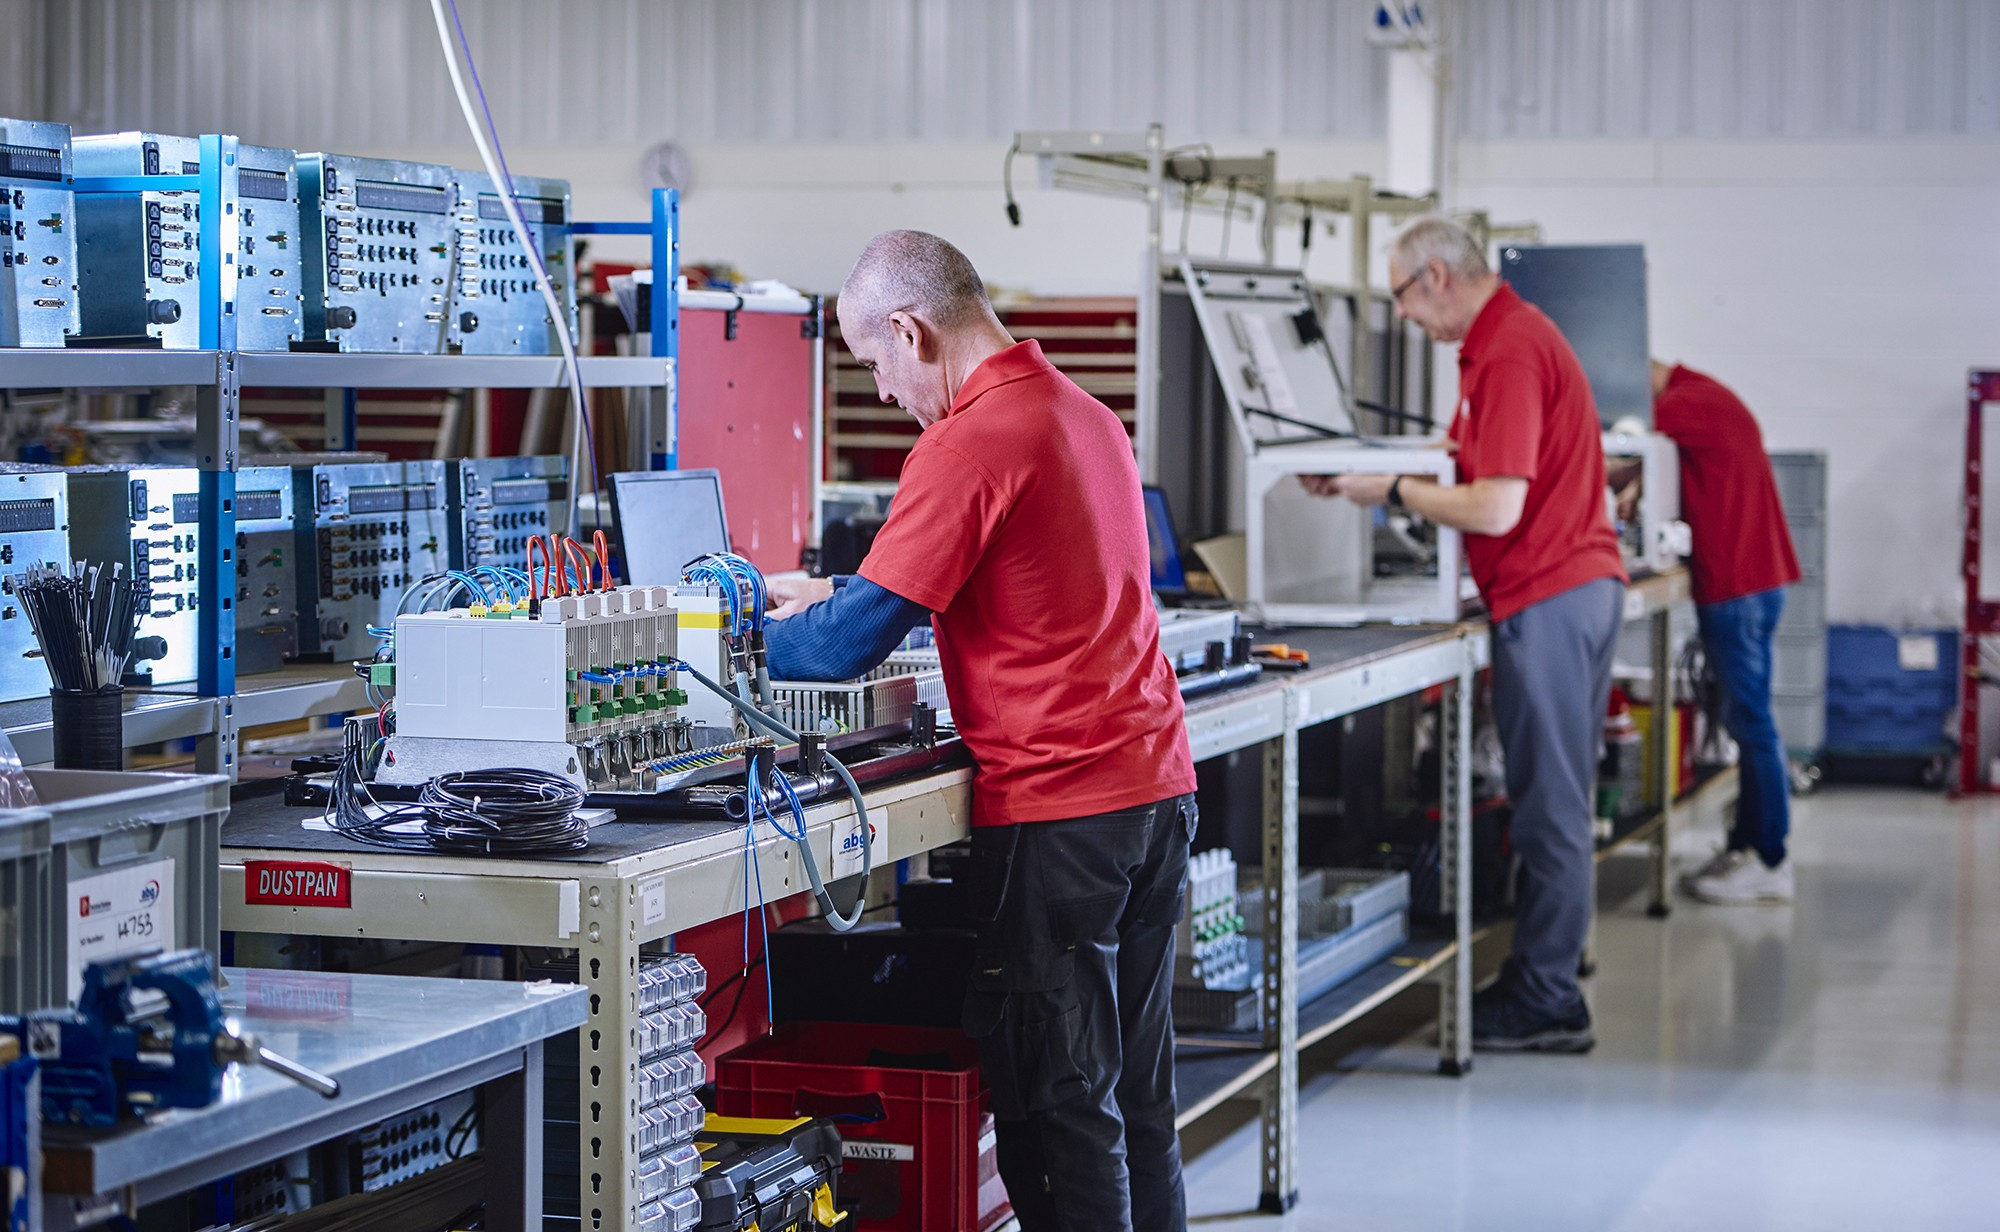 Maximising manufacturing output » PP Control and Automation Nov 201742023 » PP Control & Automation